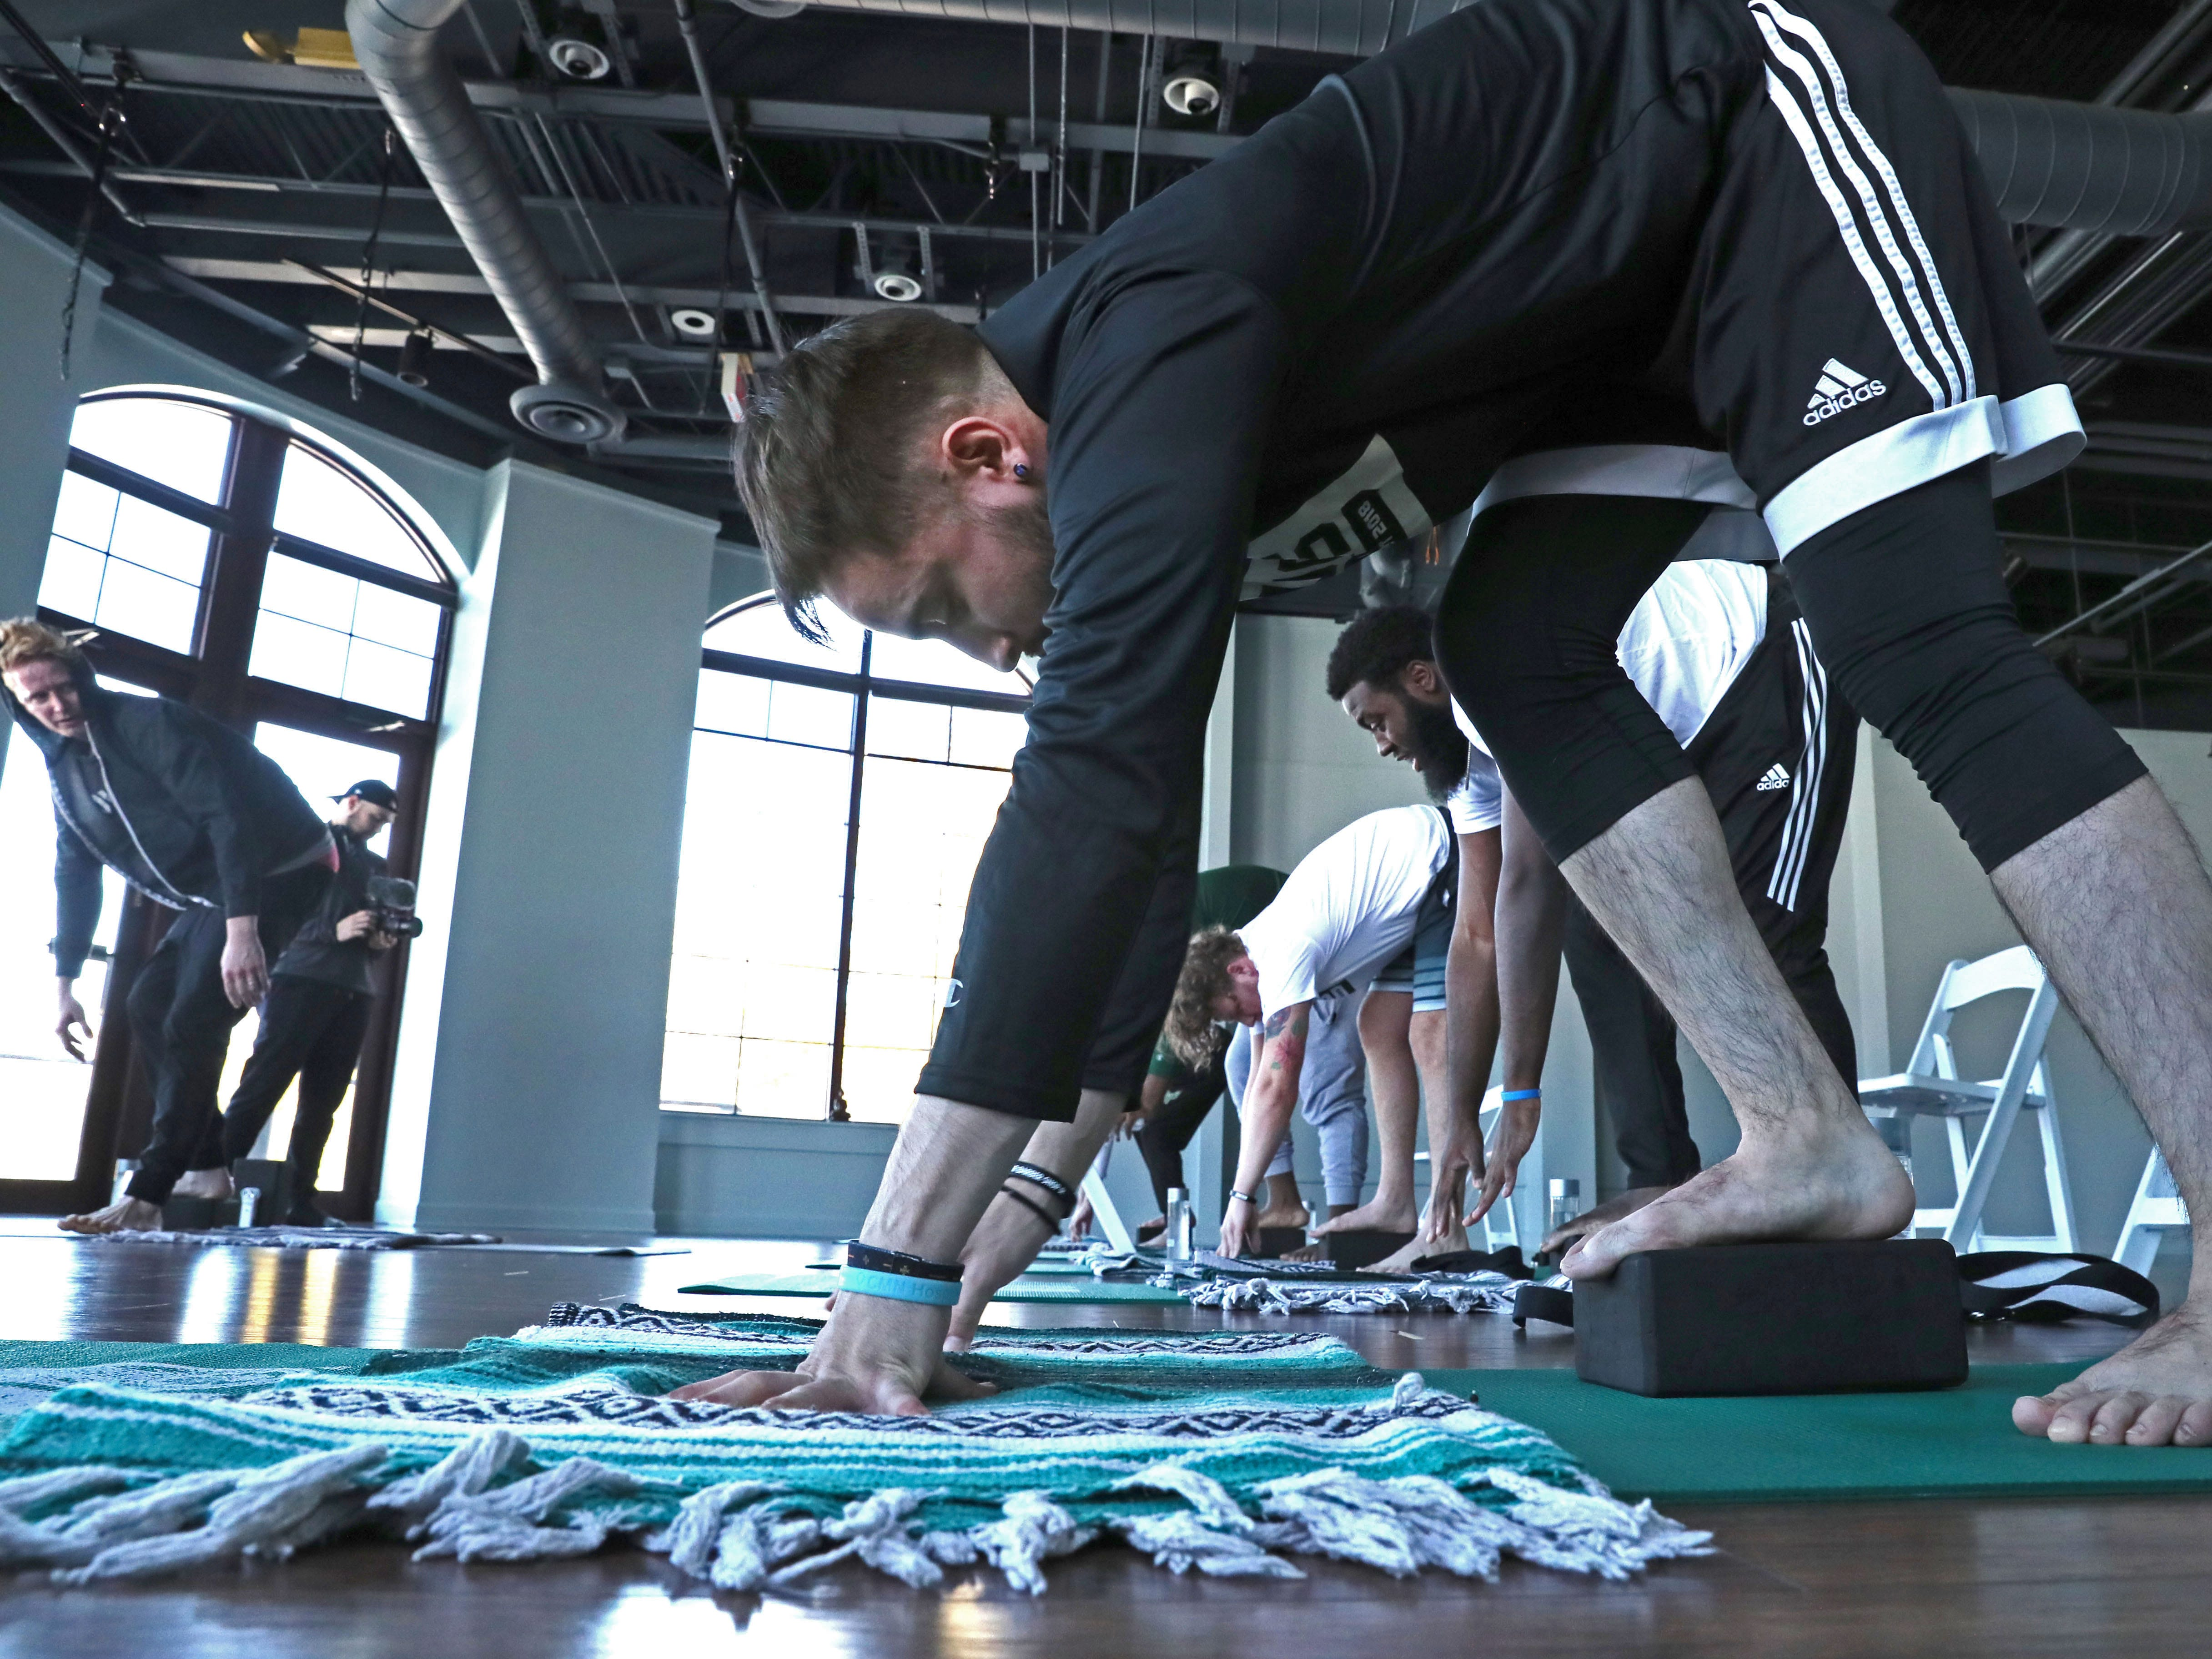 Bucks Gaming NBA 2K team member Chad Fodderie (foreground) listens to instructor Greg Cartwright (left) and moves into position as members of the team participate in a yoga class at Yoga On The Lake in Kohler.